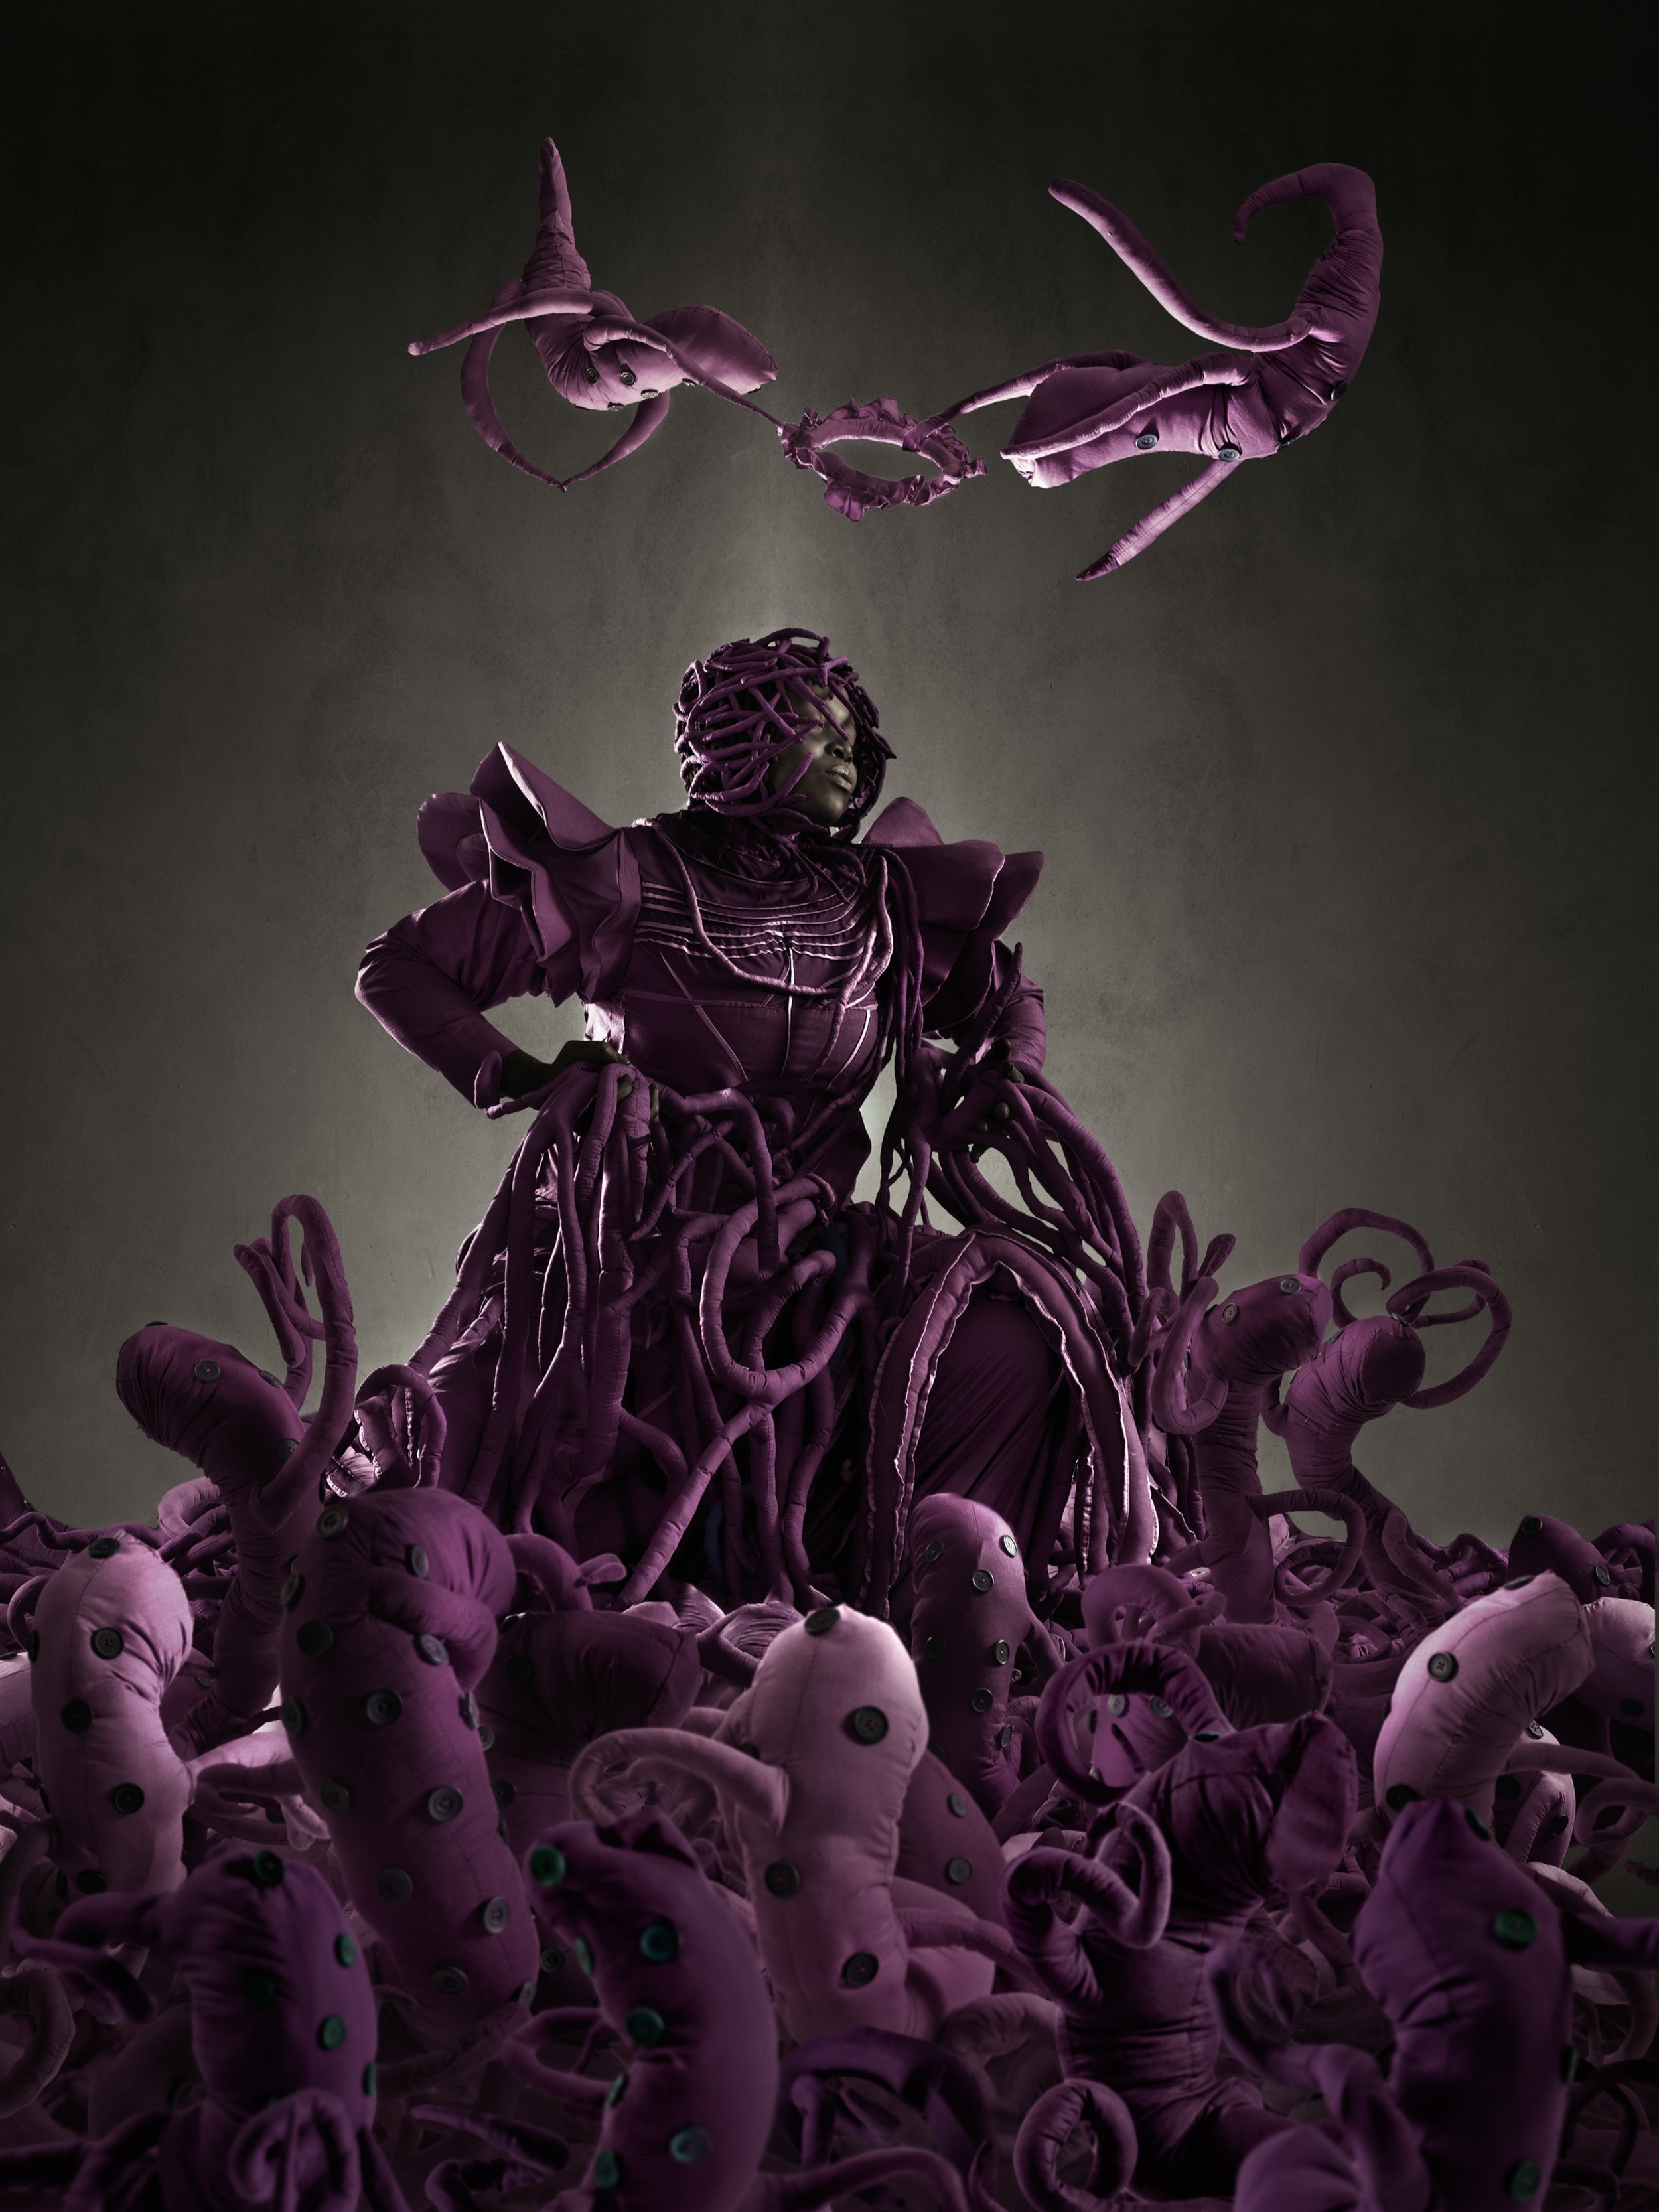 Image Credit : Mary Sibande, The Admir ation of the Purple Figure, 2013, Digital Archival Print 150x110 cm / 59.1x43.3 in. Gallery Momo/ Licensed by Gallery Momo, Cape Town, South Africa.